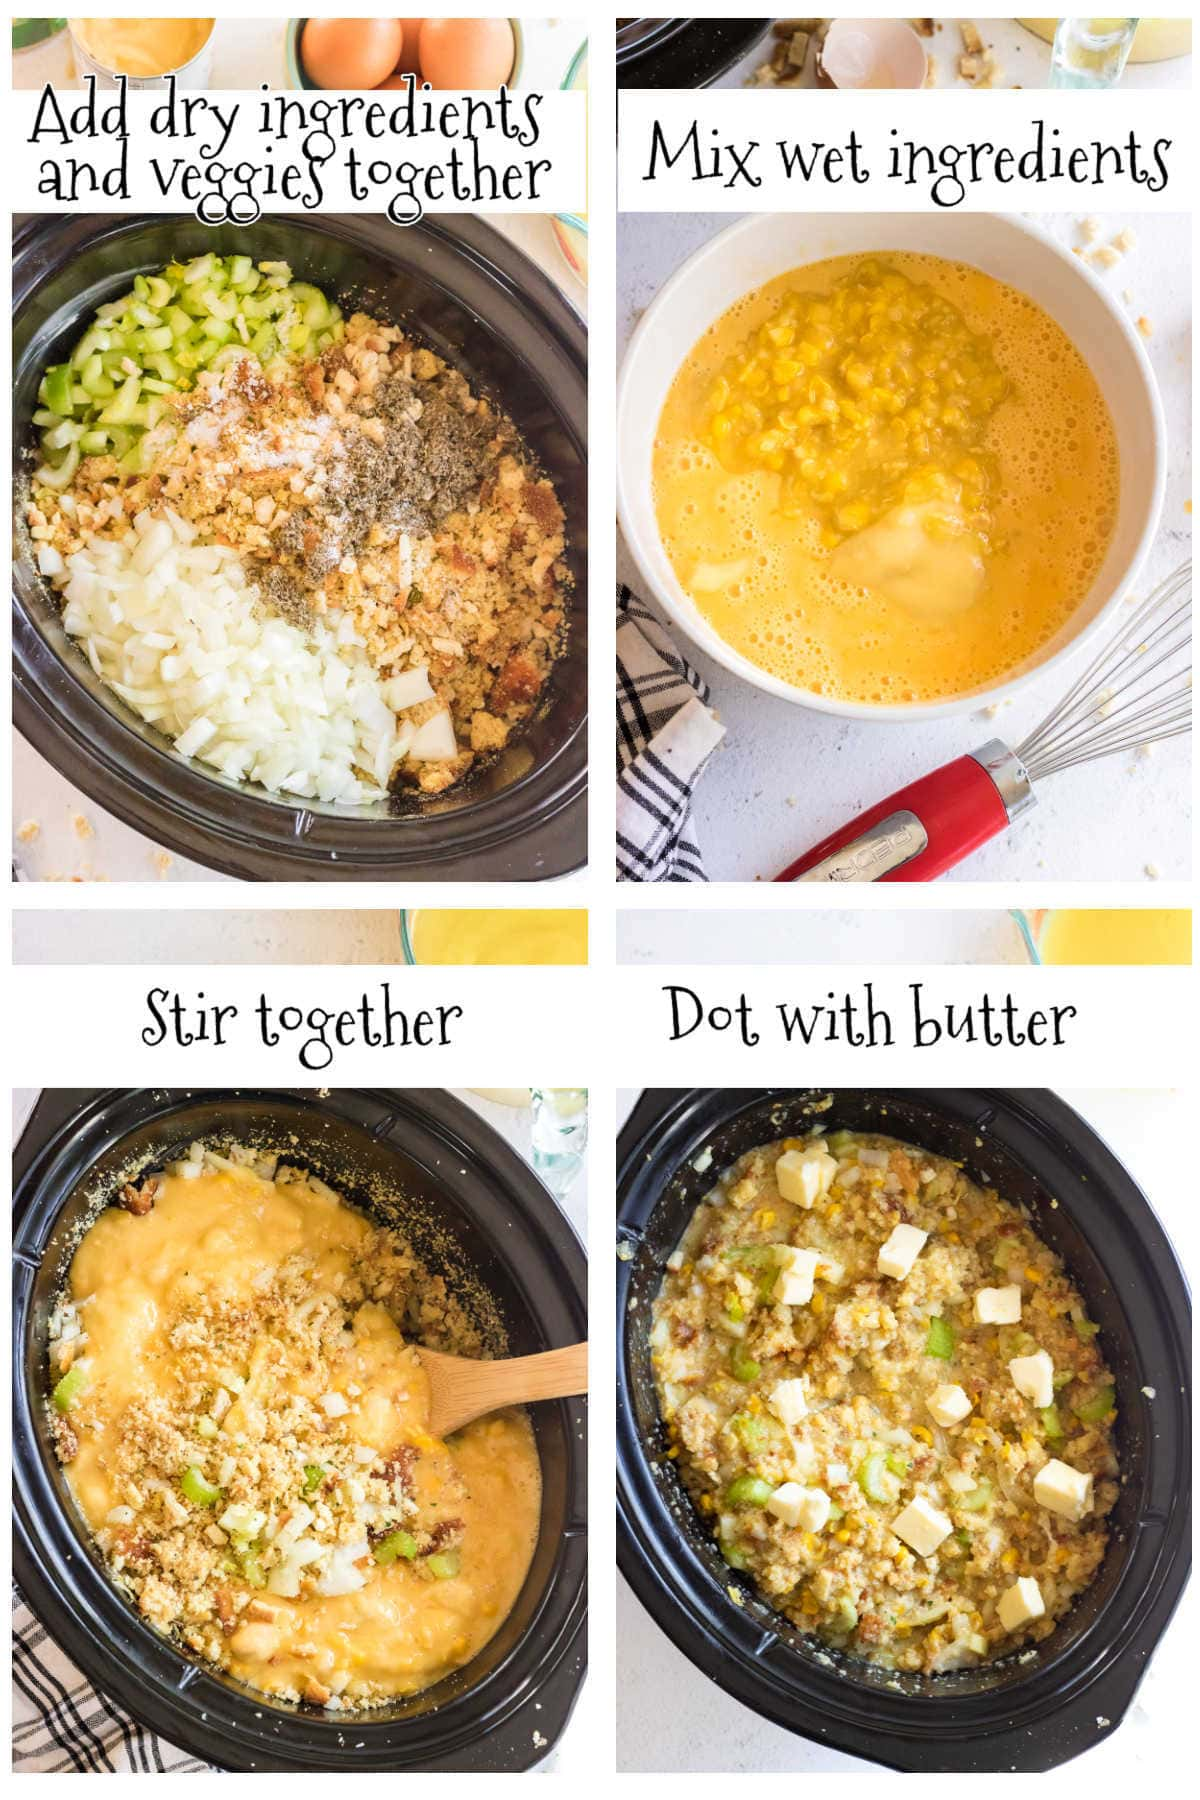 Step by step images for making dressing in a slow cooker.